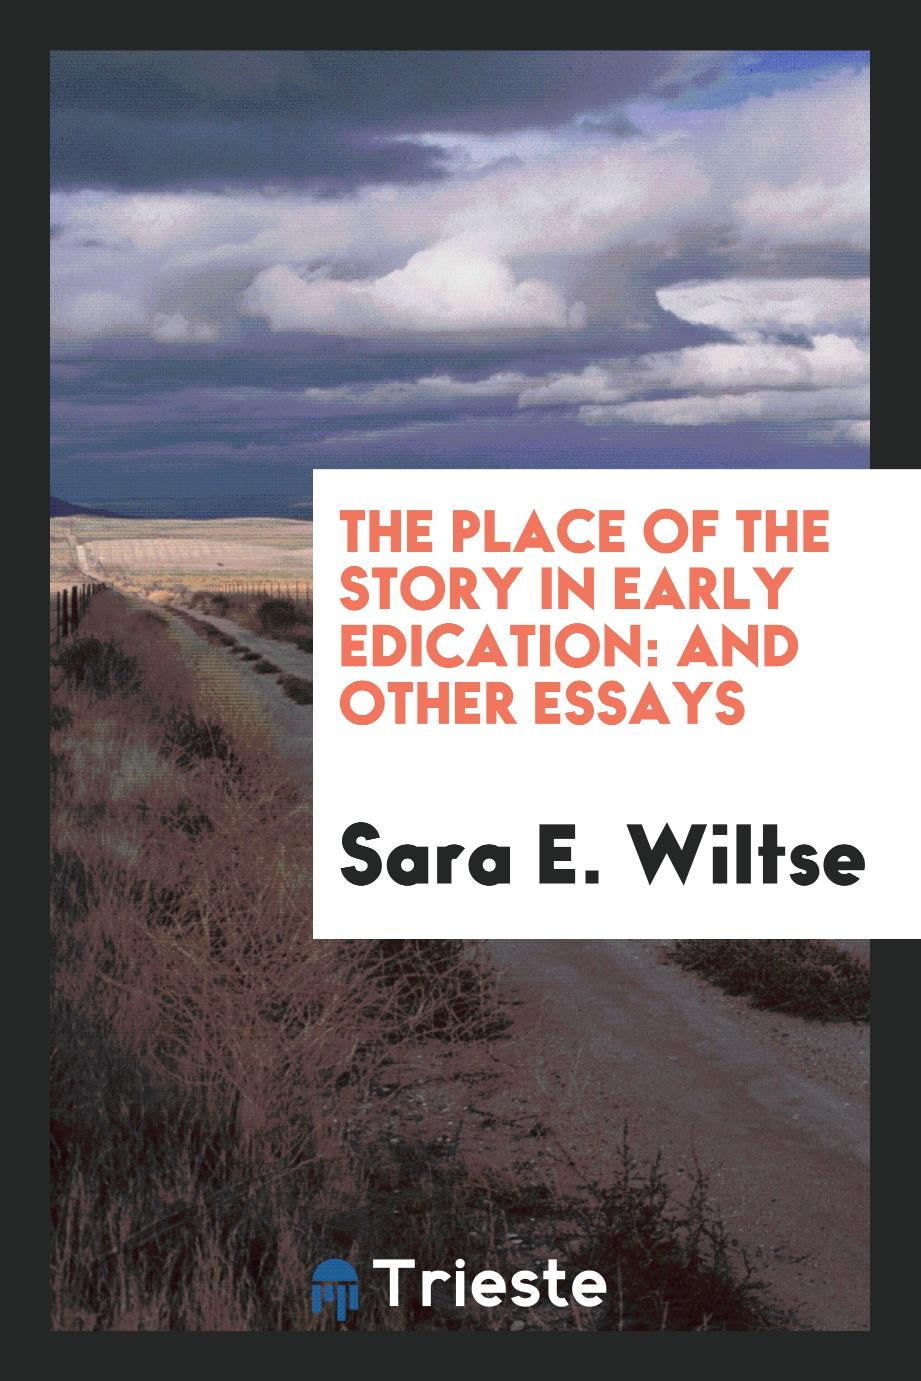 The Place of the Story in Early Edication: And Other Essays